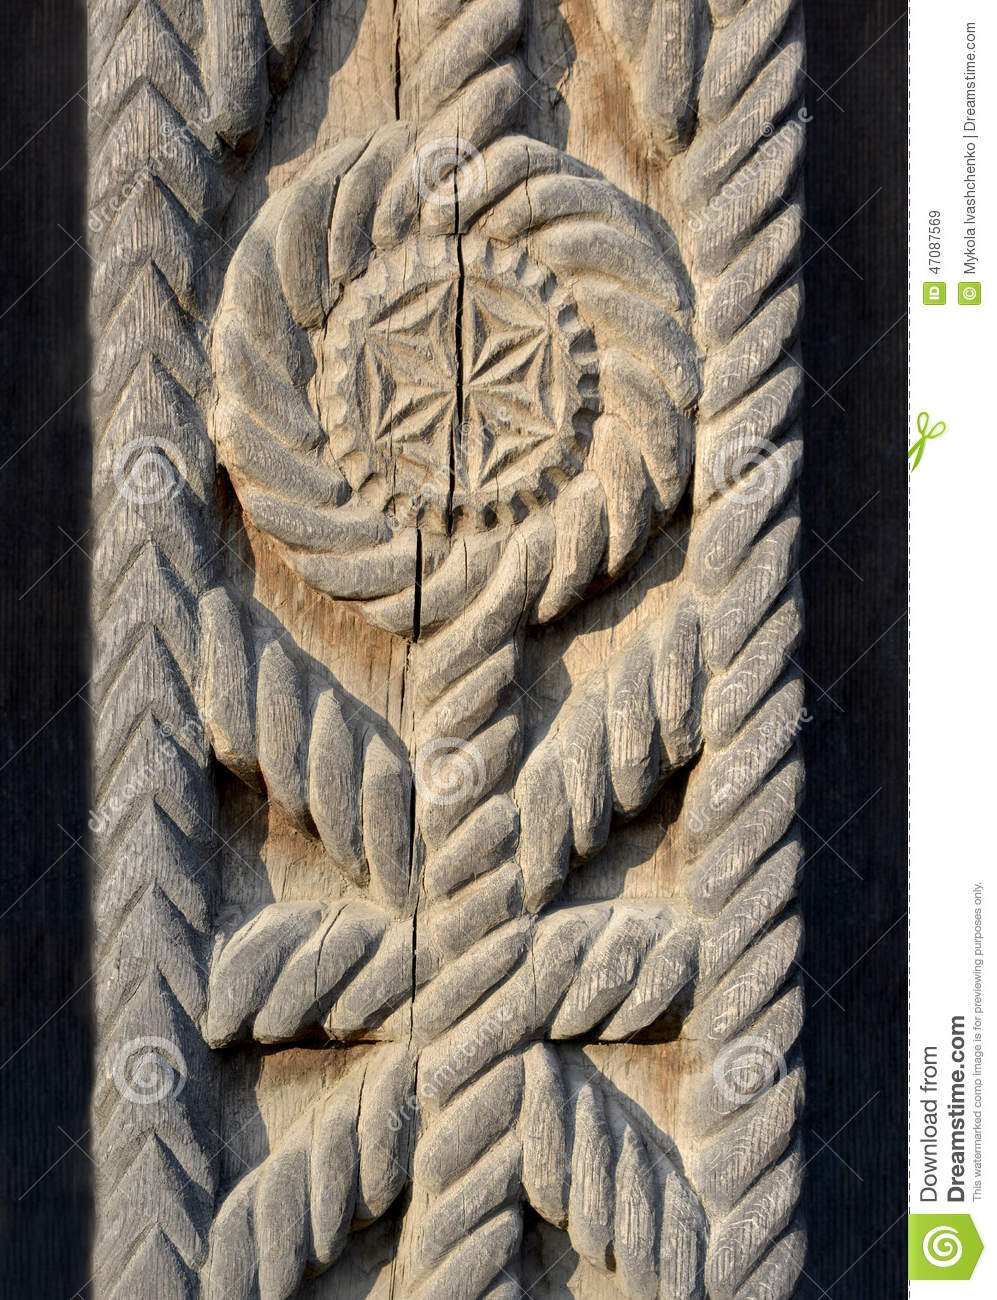 The example of wood carving stock photo image